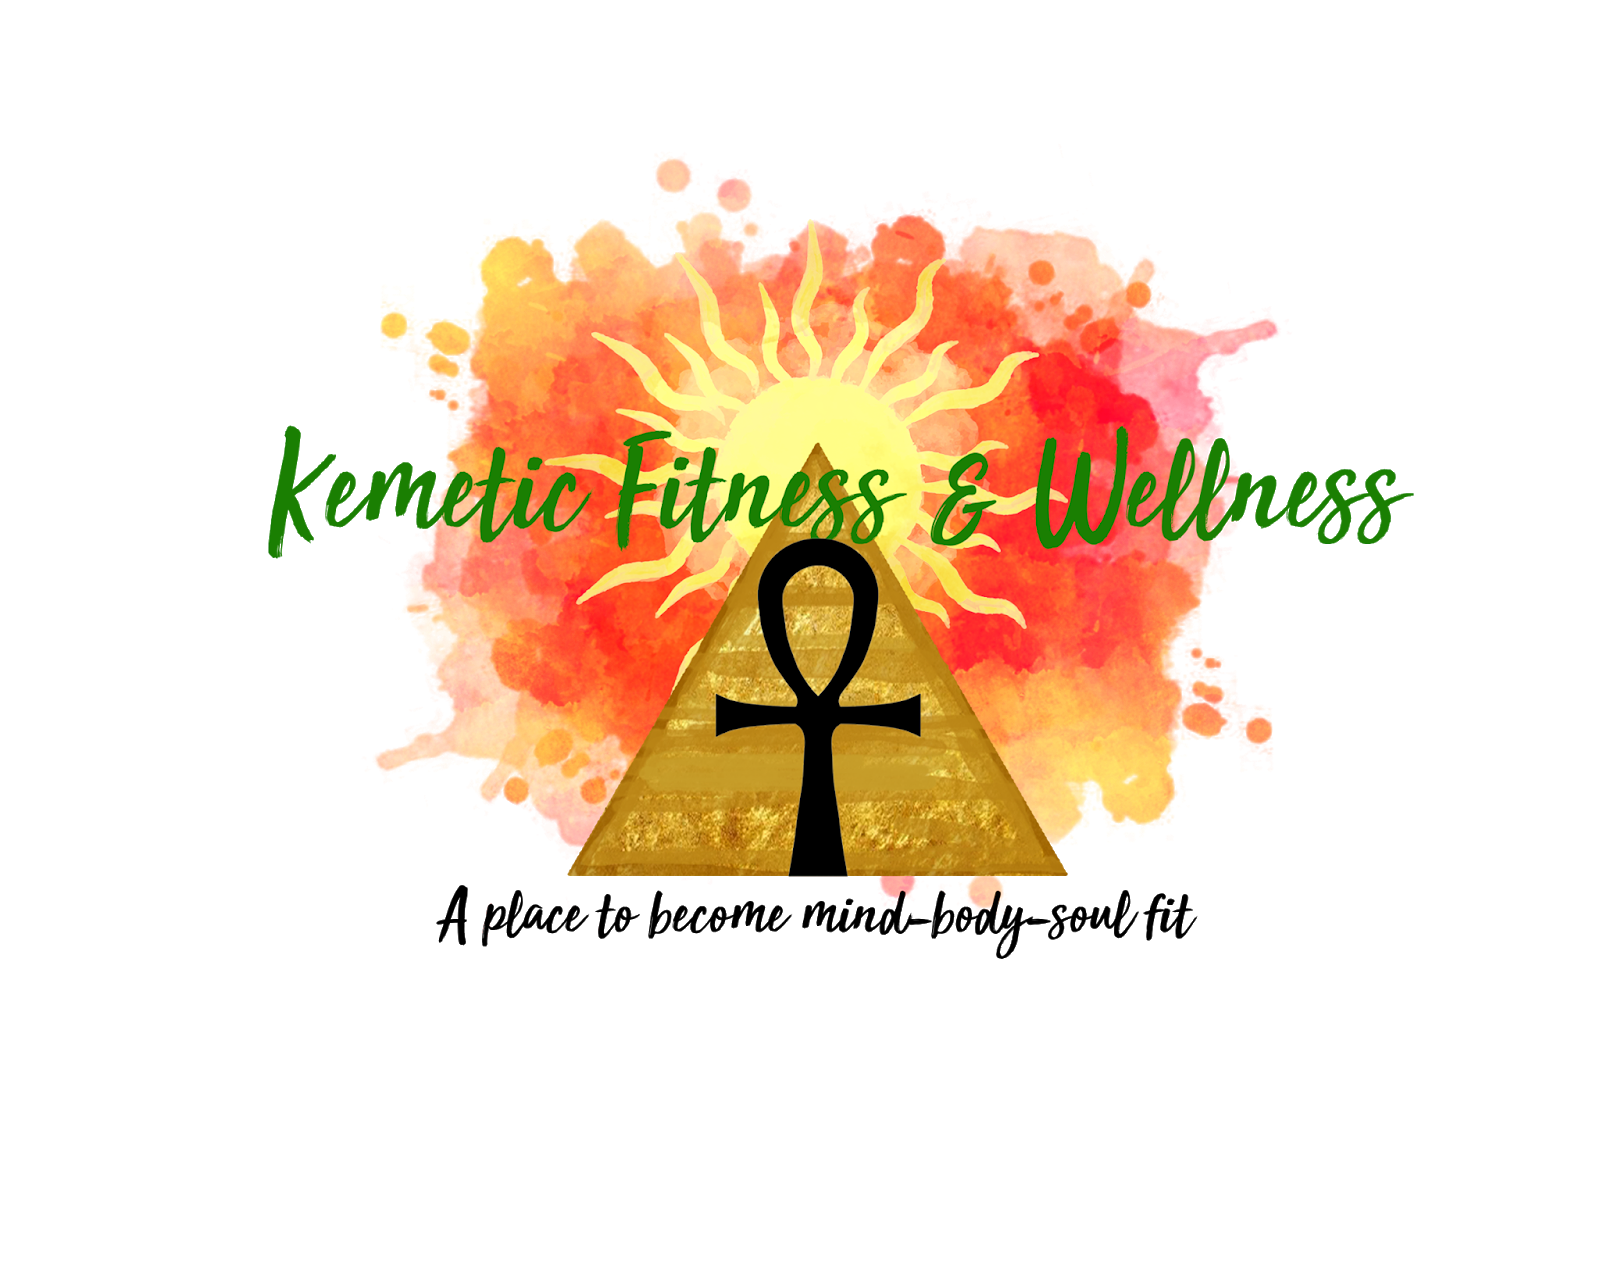 Kemetic Fitness and Wellness